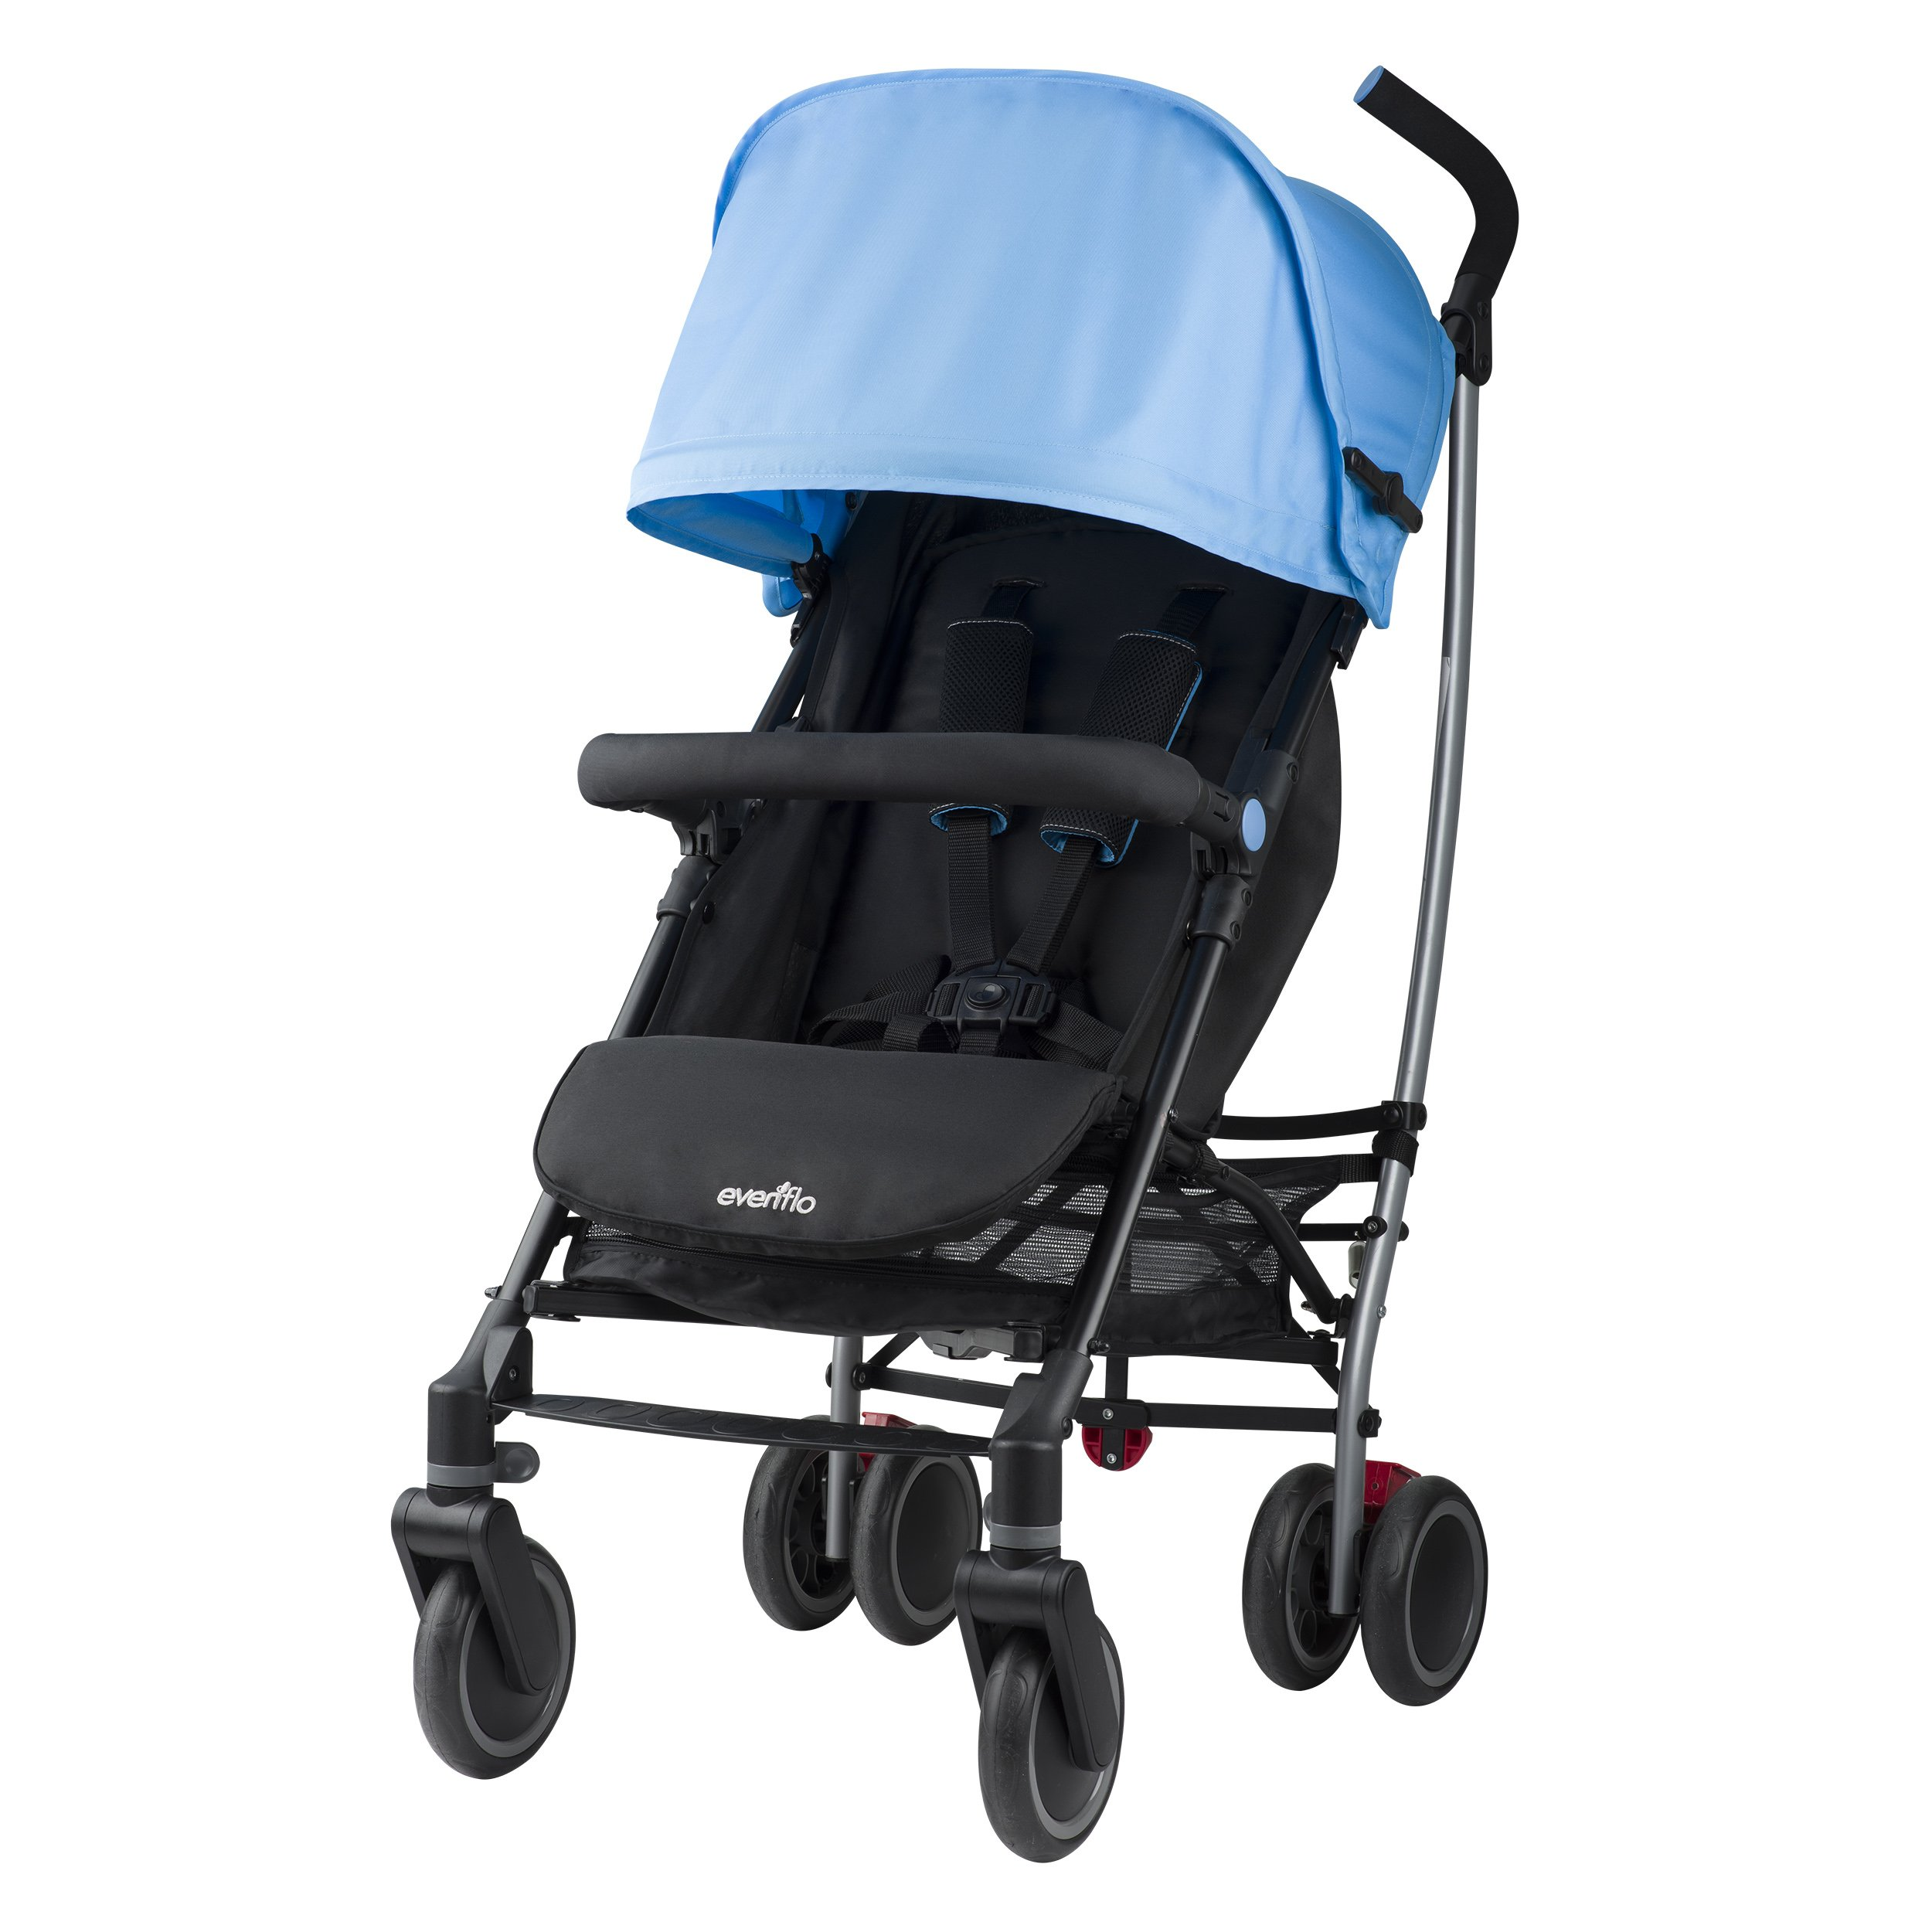 Evenflo Cambridge Stroller, Sky Blue | Baby Strollers ...